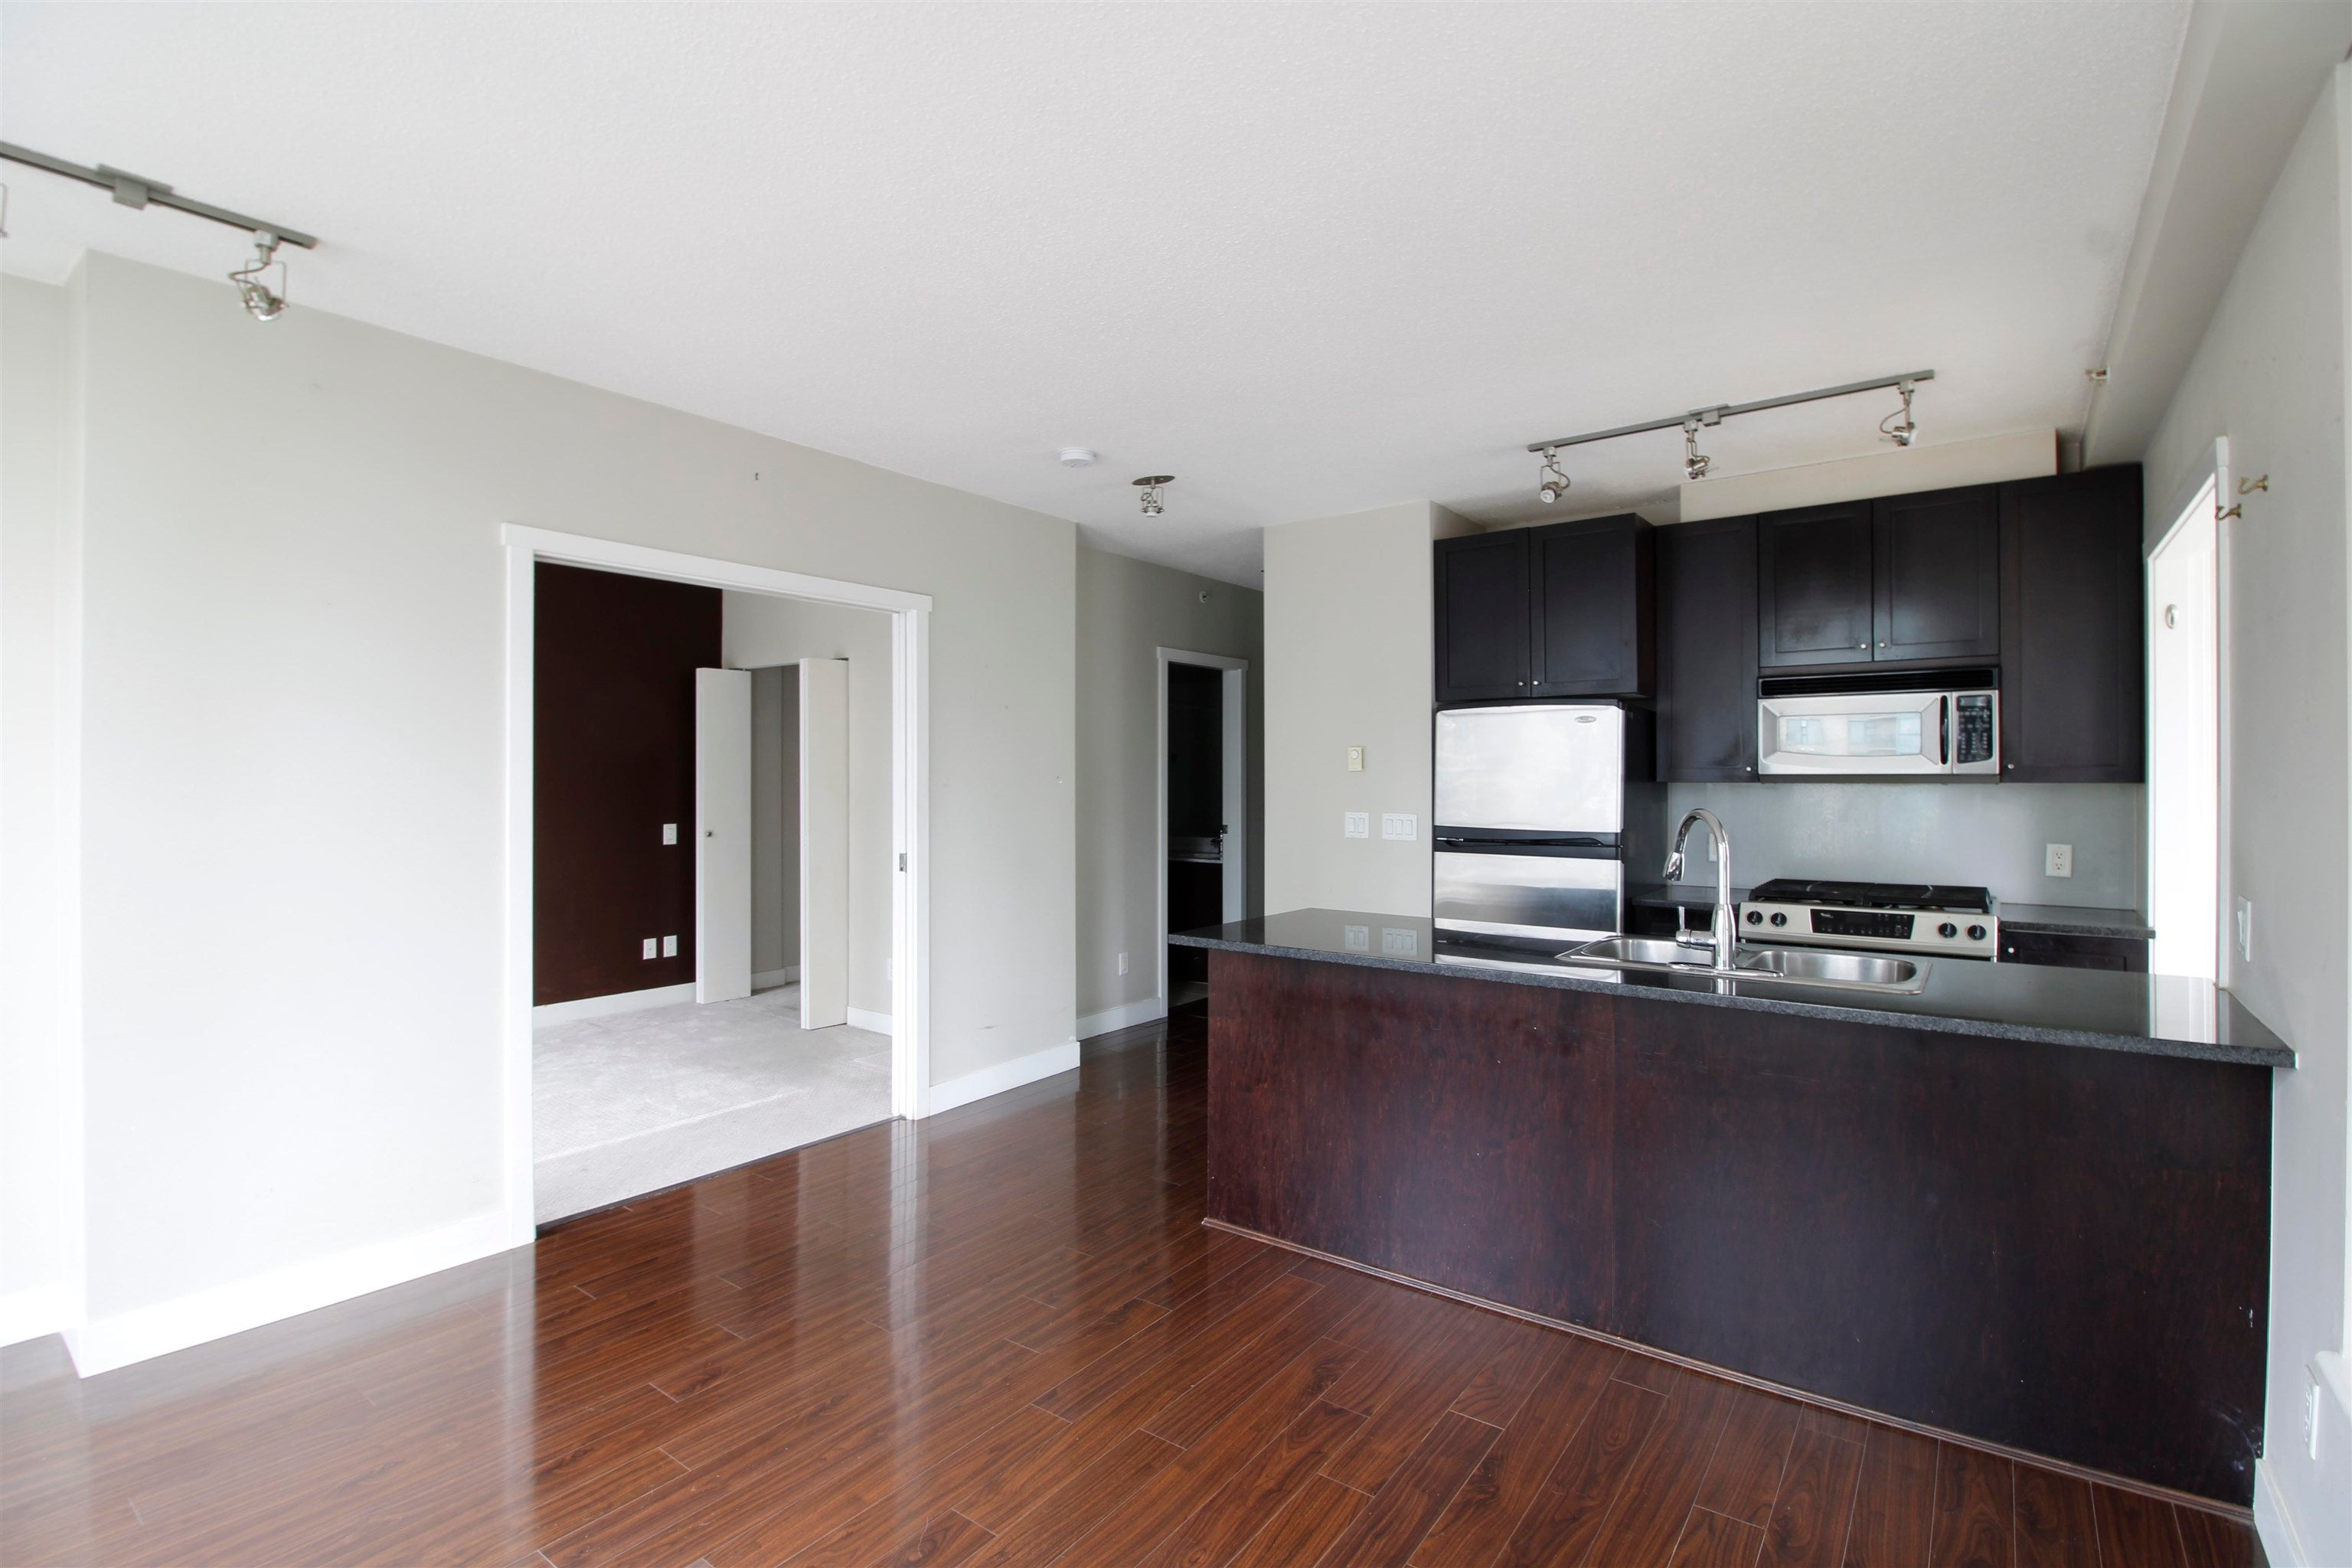 1502 1001 HOMER STREET - Yaletown Apartment/Condo for sale, 1 Bedroom (R2622842) - #1